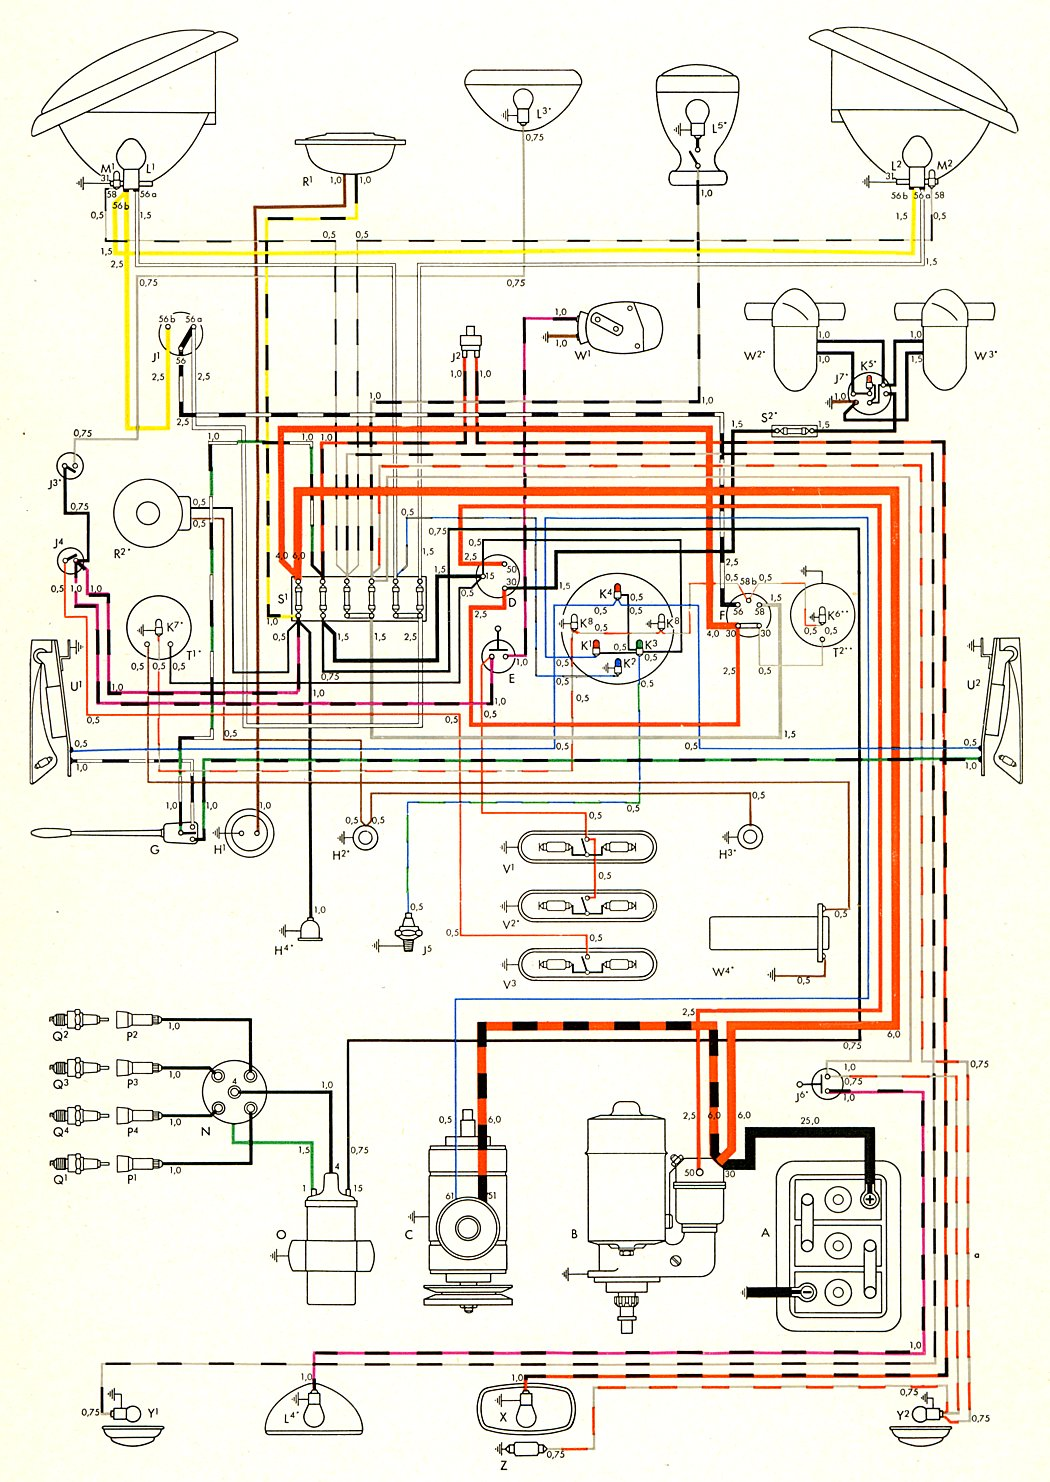 Gmc Bus Brake Wiring Excellent Electrical Diagram House 02 Sierra Buick Verano Autos Post 89 Ignition